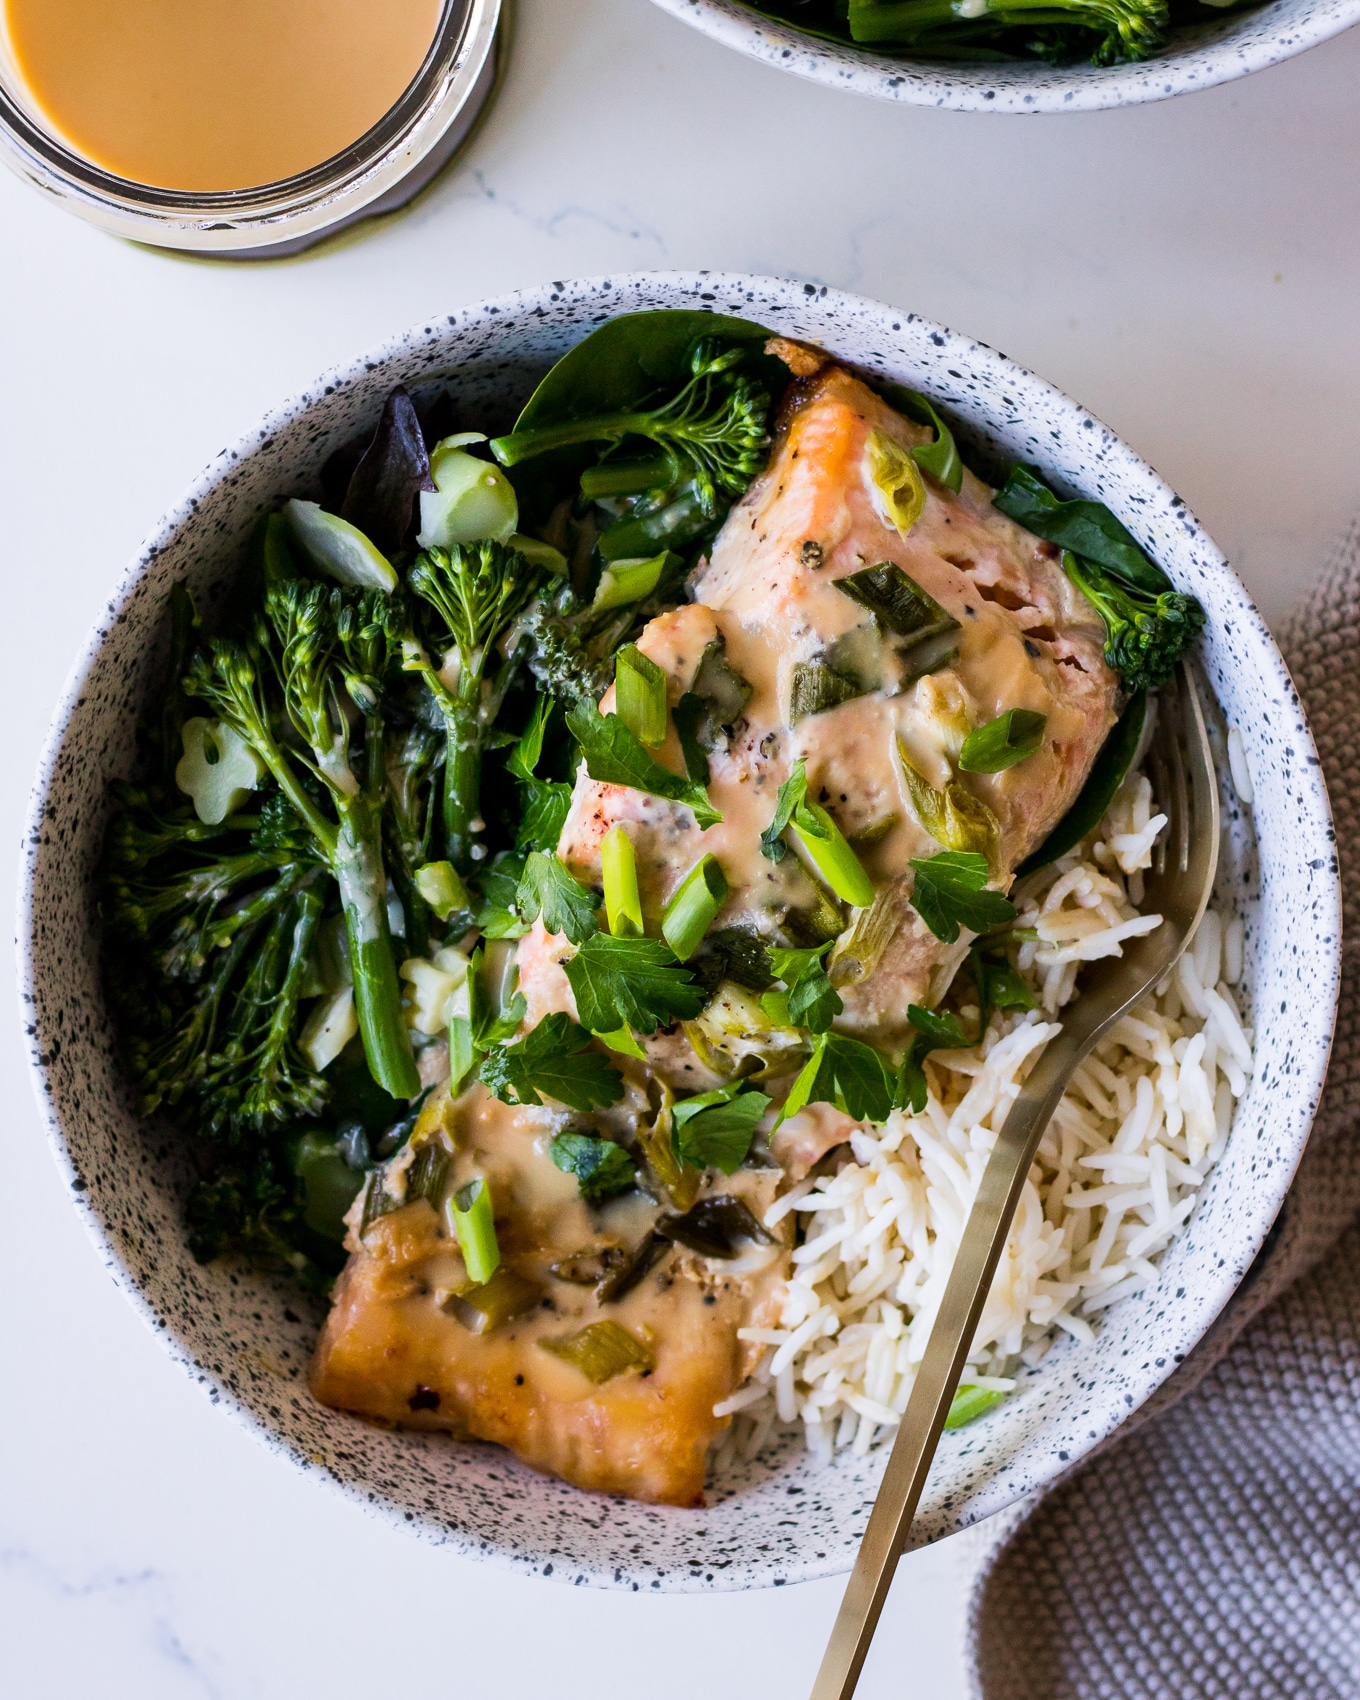 Miso baked salmon fillet with white rice and greens and spring onion